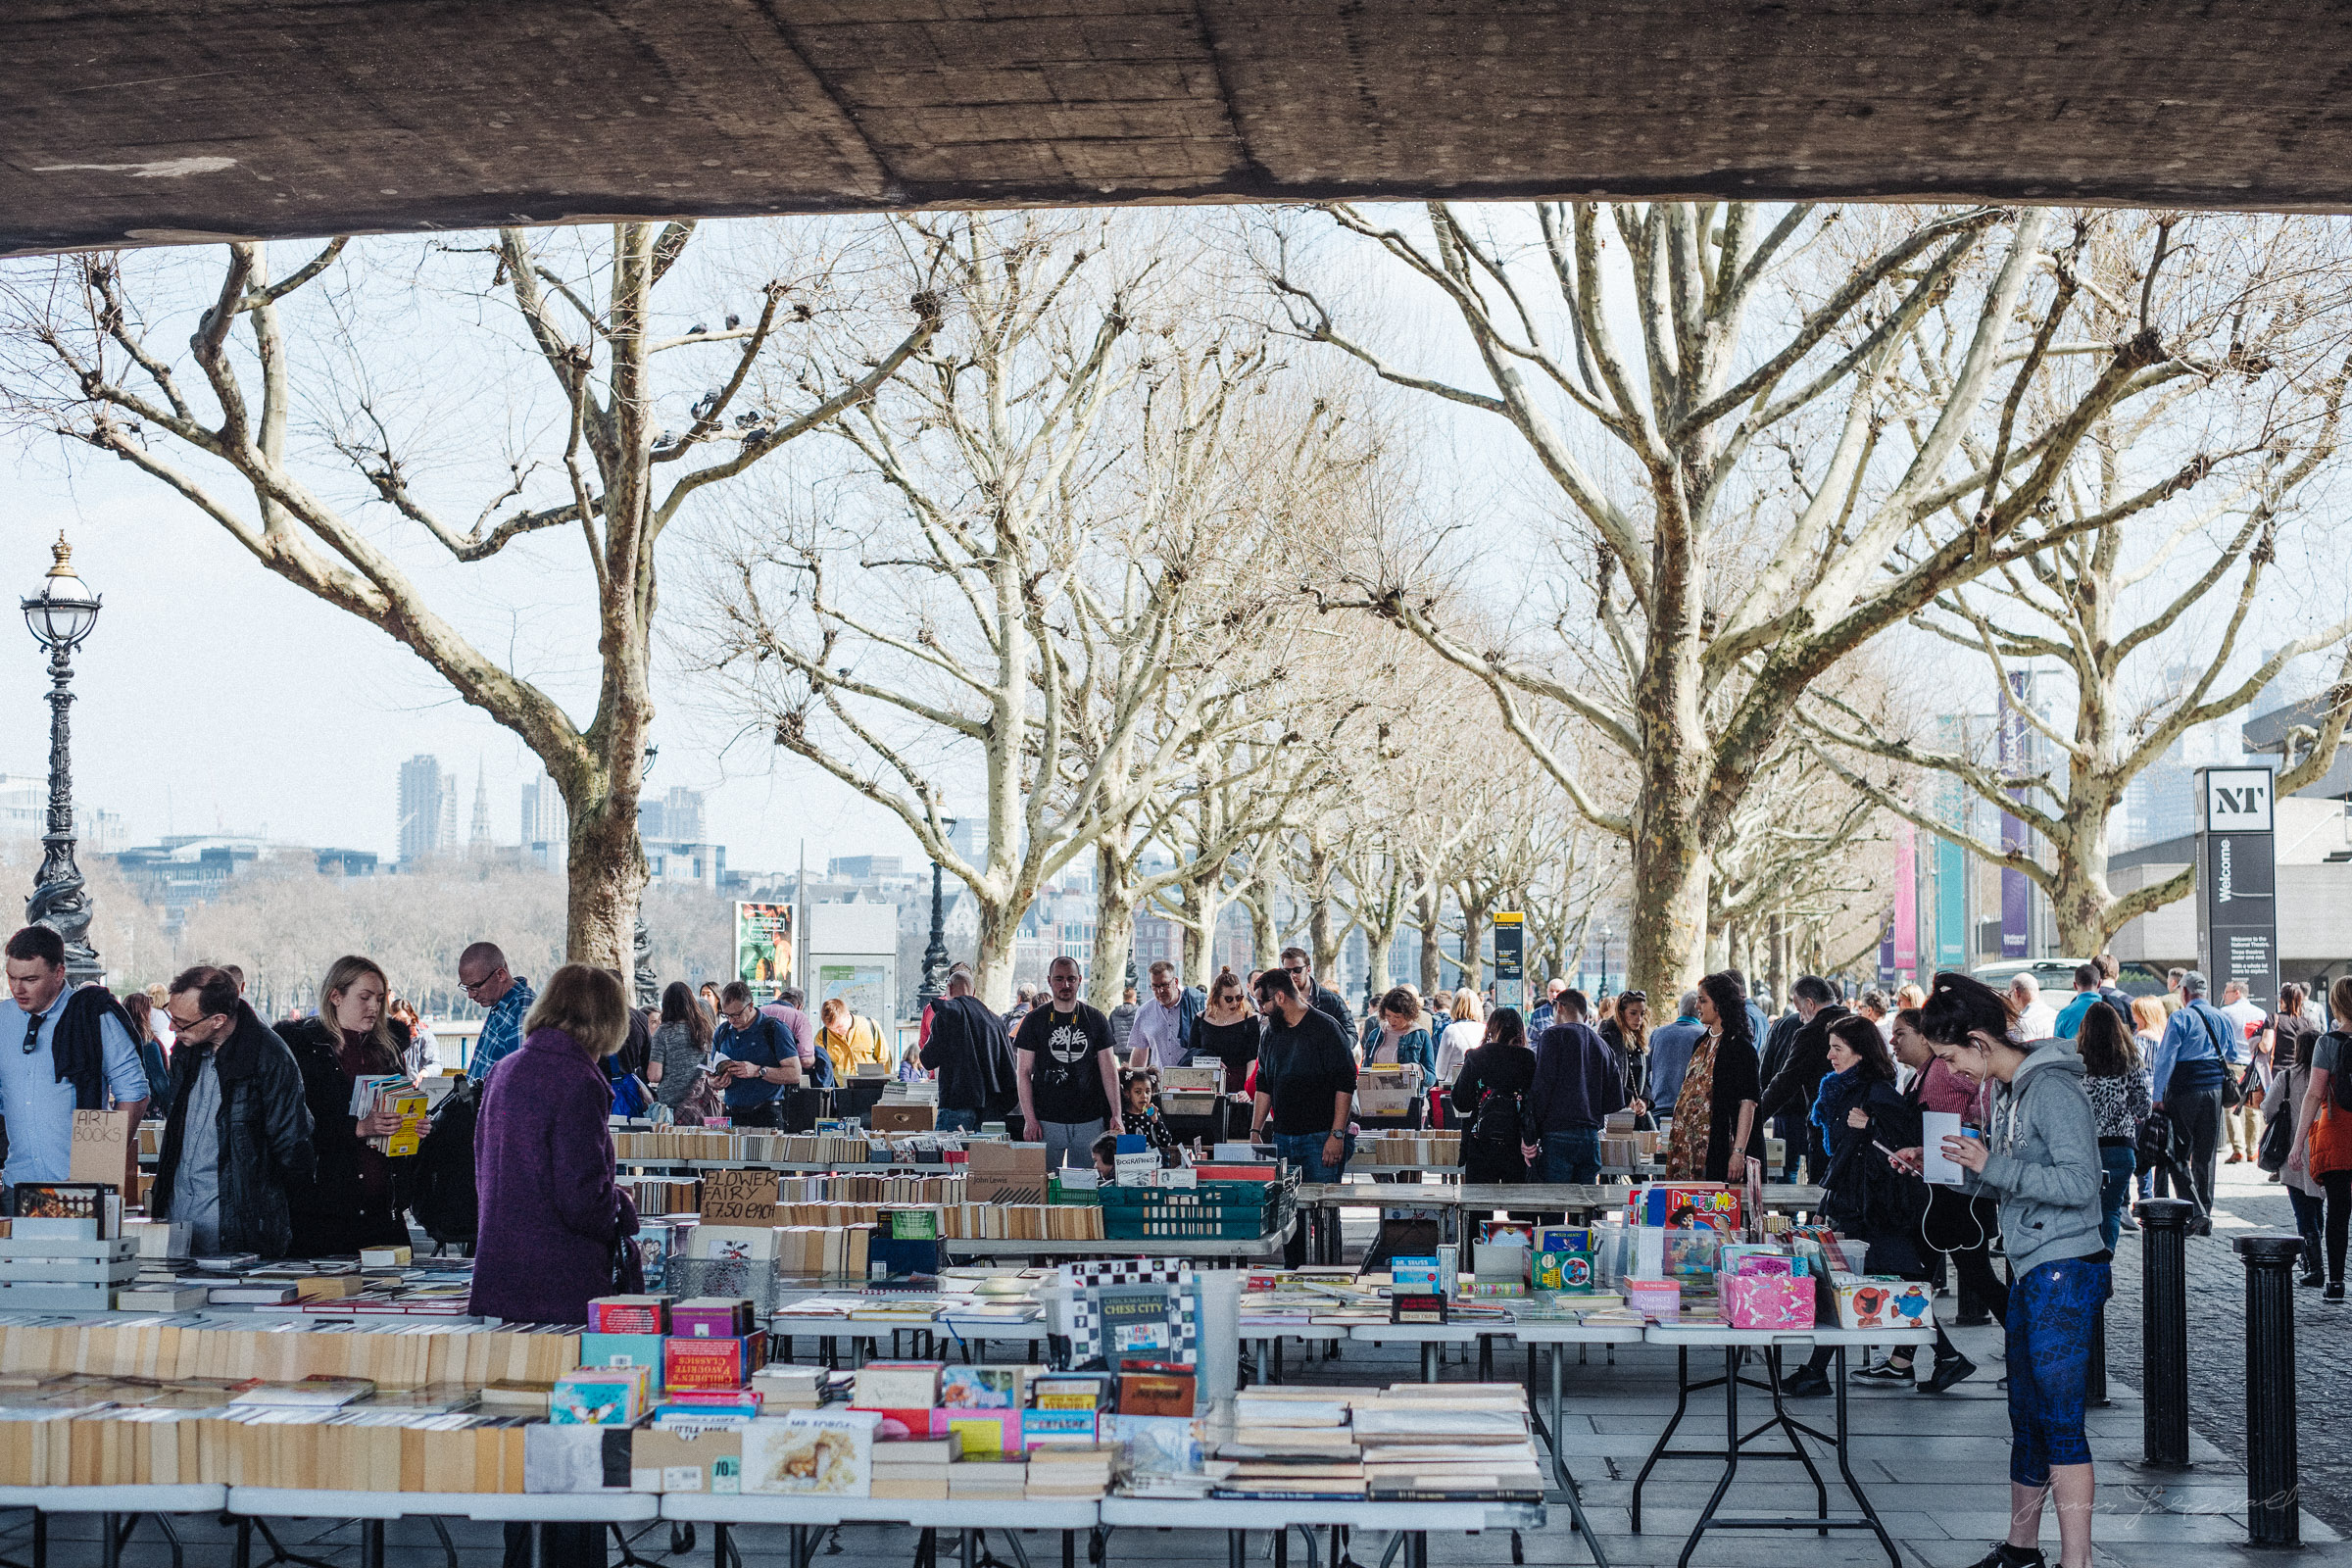 browsing the second hand book stalls at a Southbank book fair in London